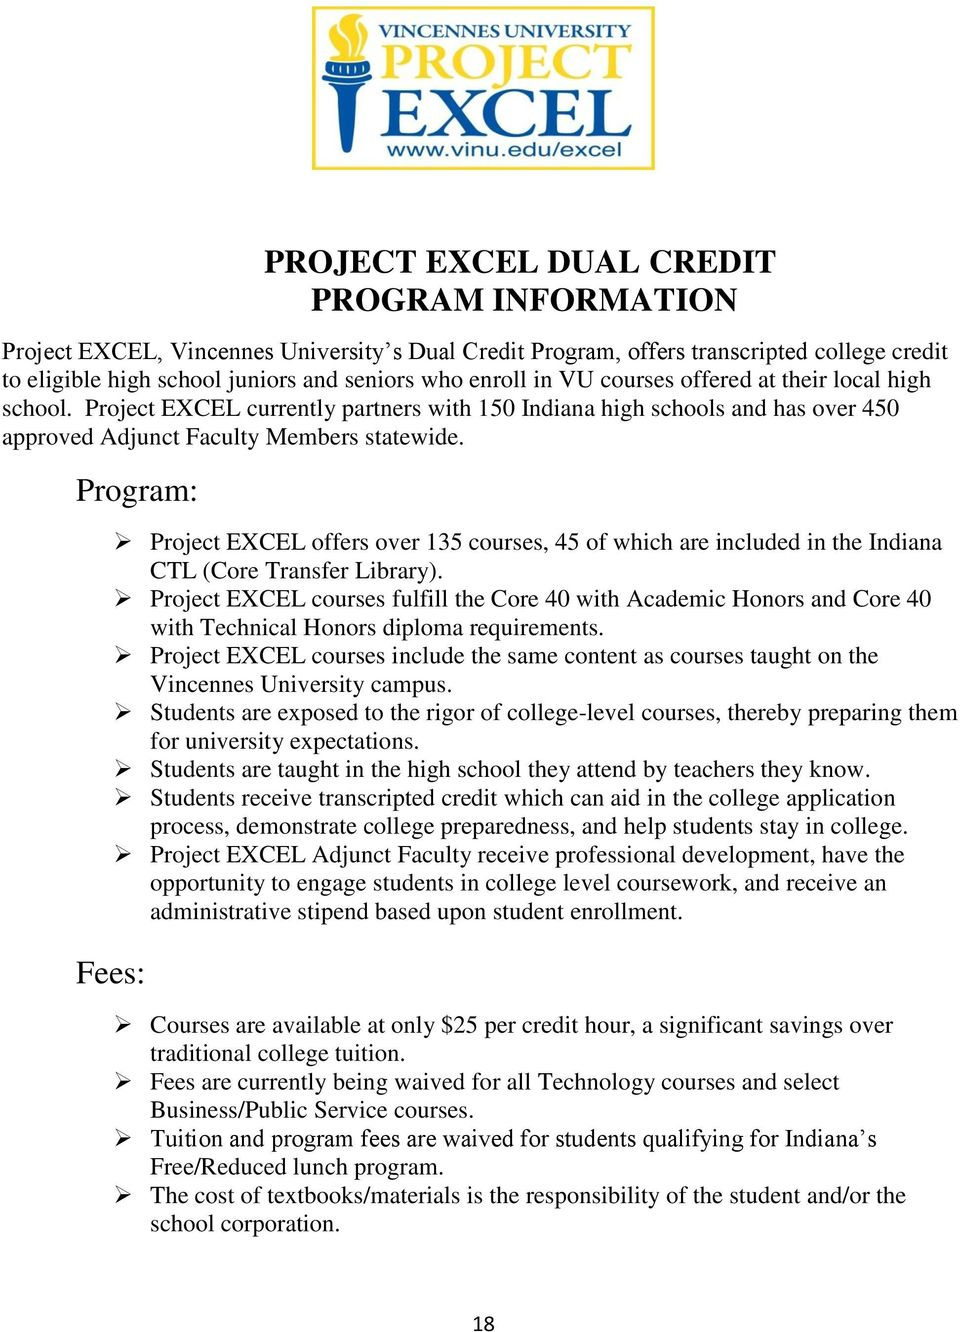 Program: Project EXCEL offers over 135 courses, 45 of which are included in the Indiana CTL (Core Transfer Library).